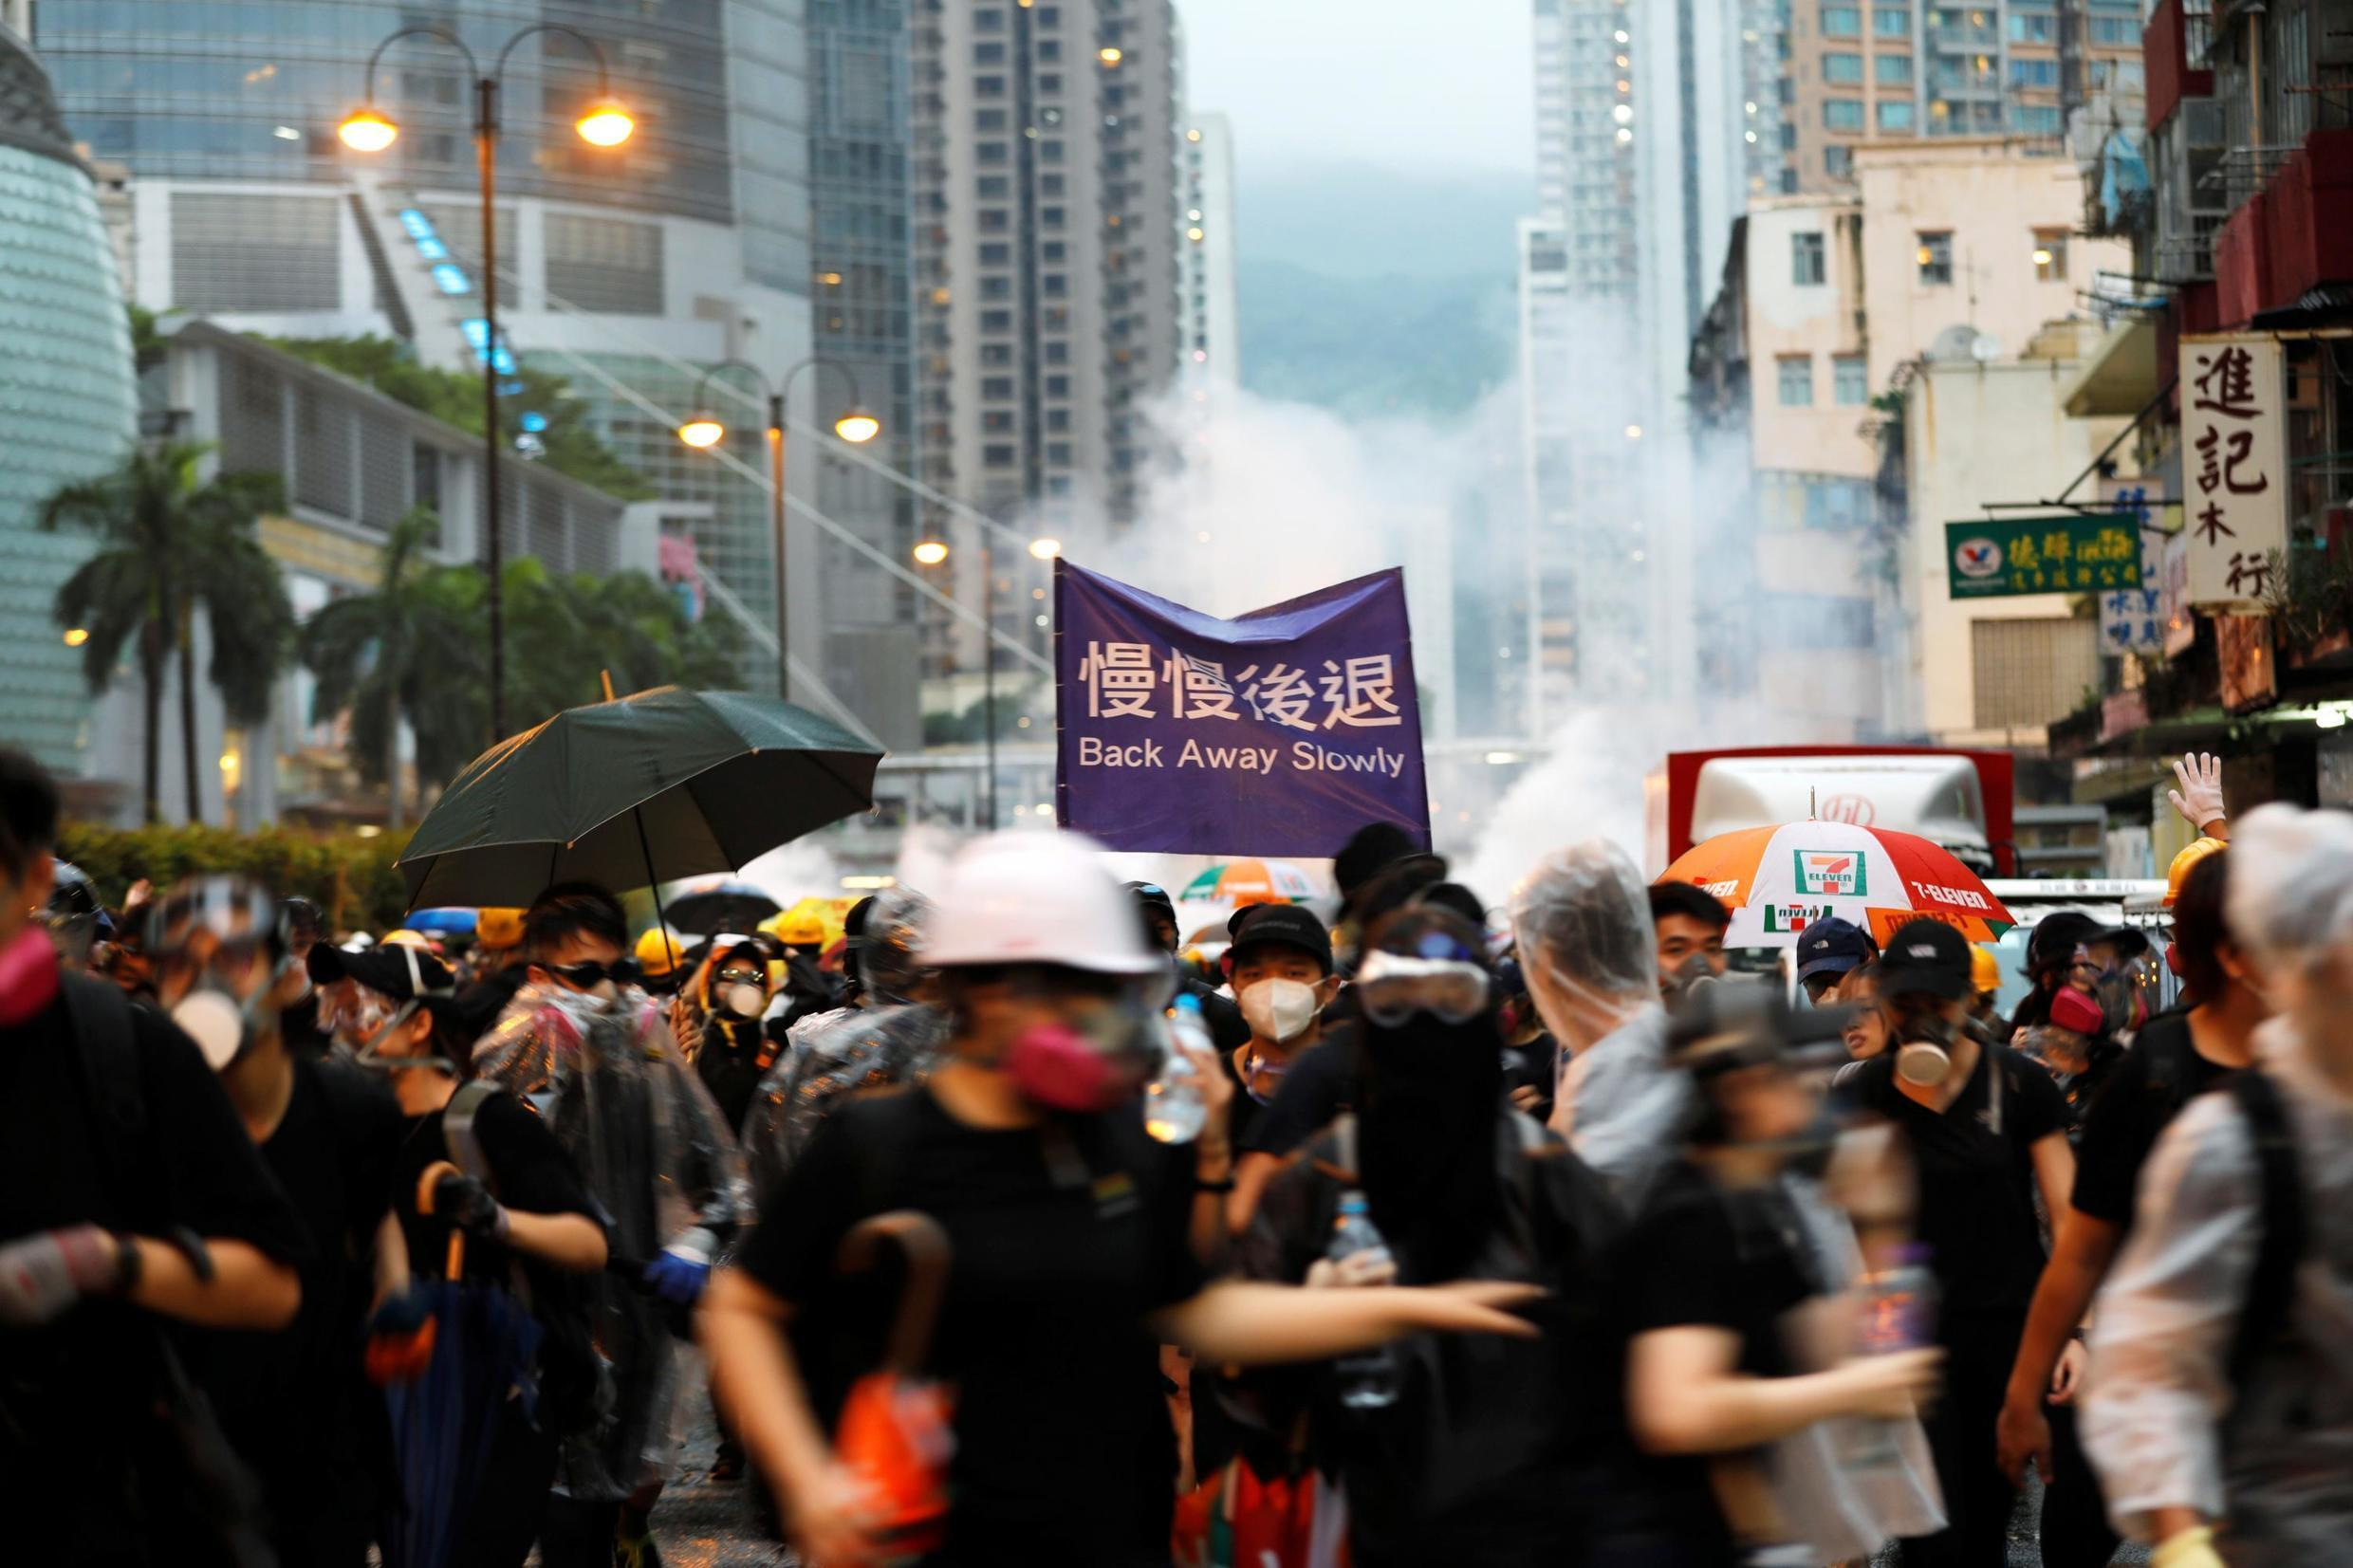 Protesto em Hong Kong, China, 25 de agosto de 2019.